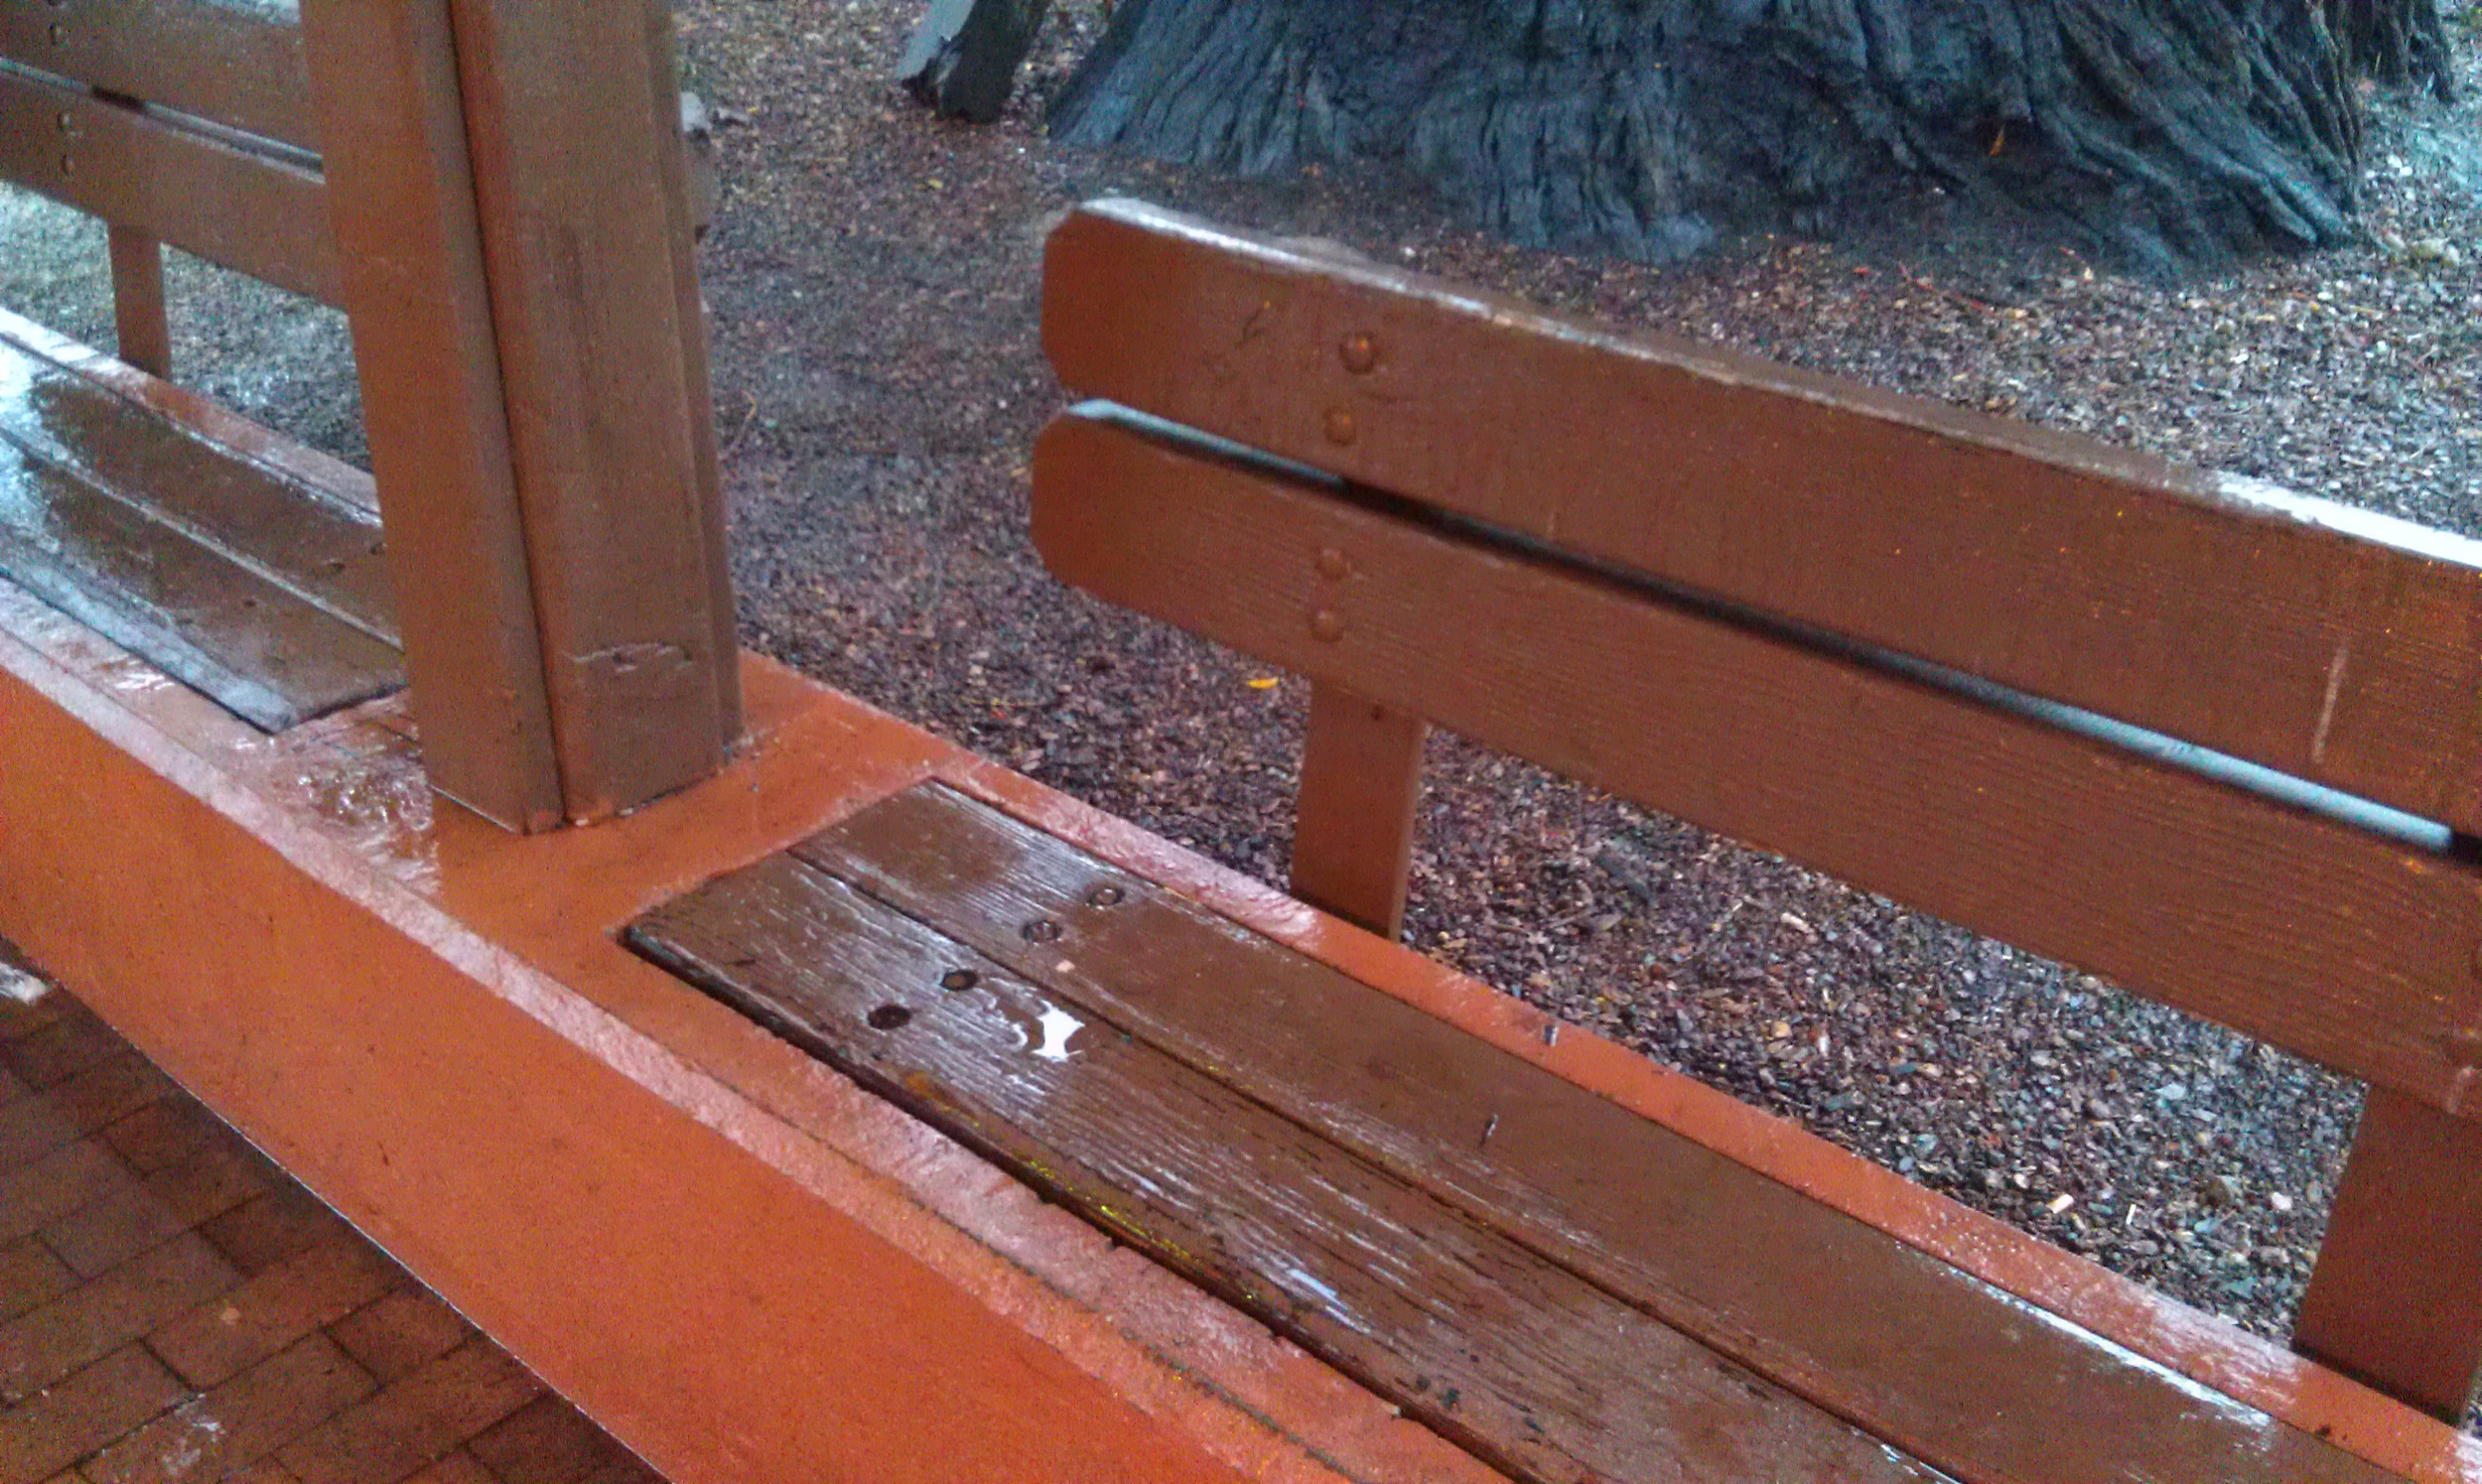 A soaked bench at the Depot. Image by the author.